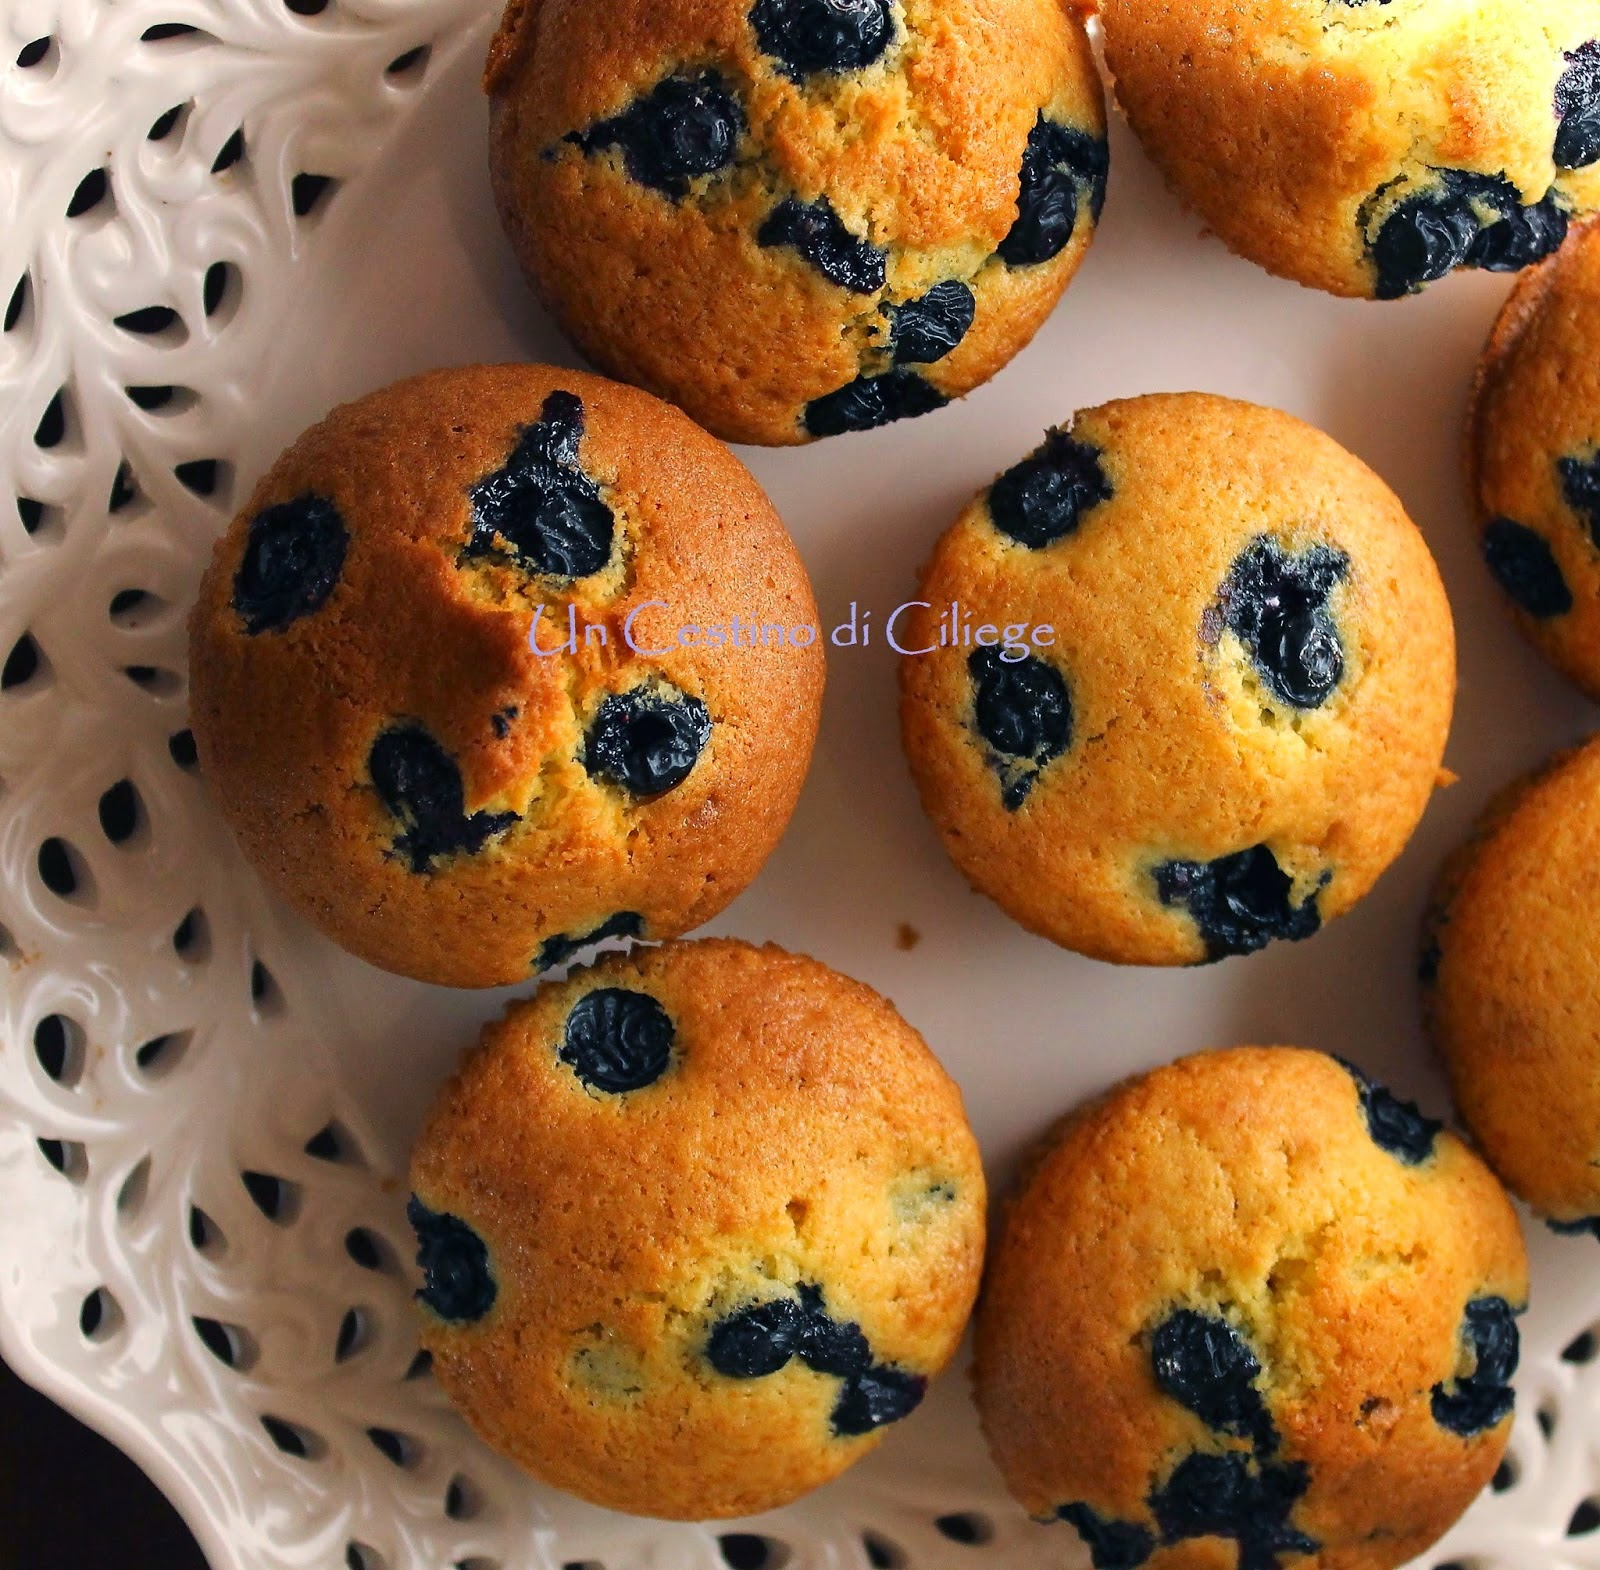 http://uncestinodiciliege.blogspot.it/2014/05/muffins-con-mirtilli.html